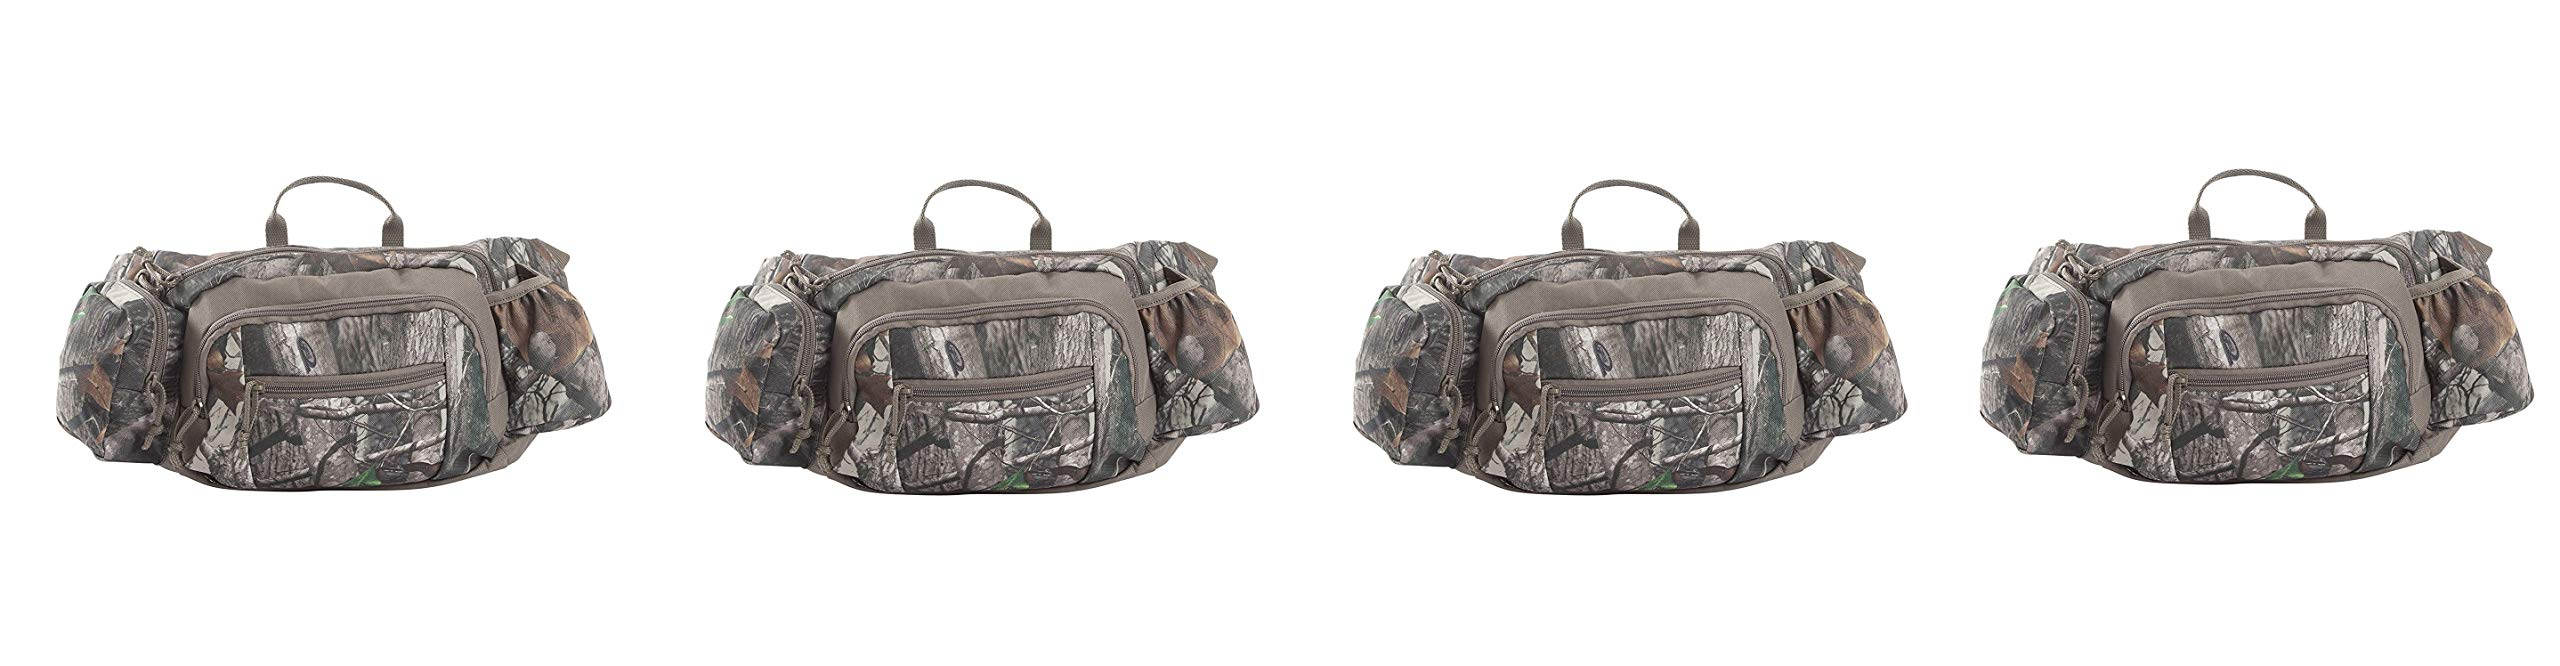 Allen Crusade Camo Hunting Waist Pack, 600 Cubic Inches, Next G2 (Pack of 4)